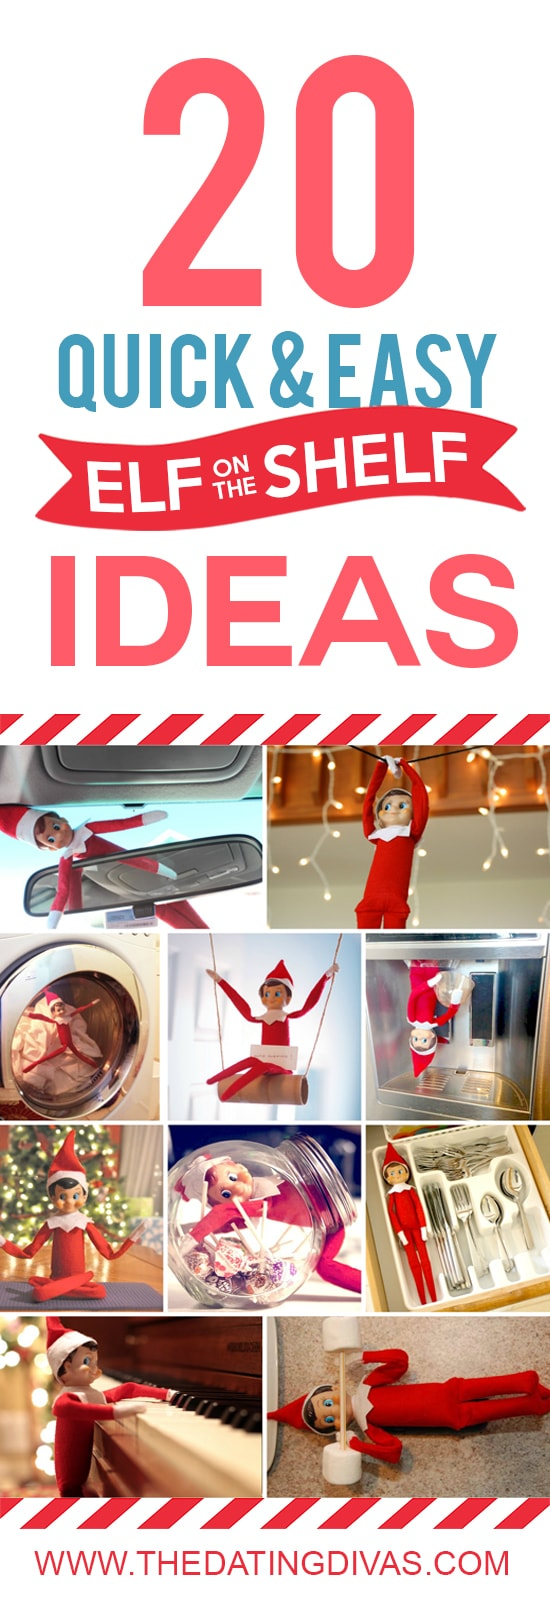 Christmas elf ideas.